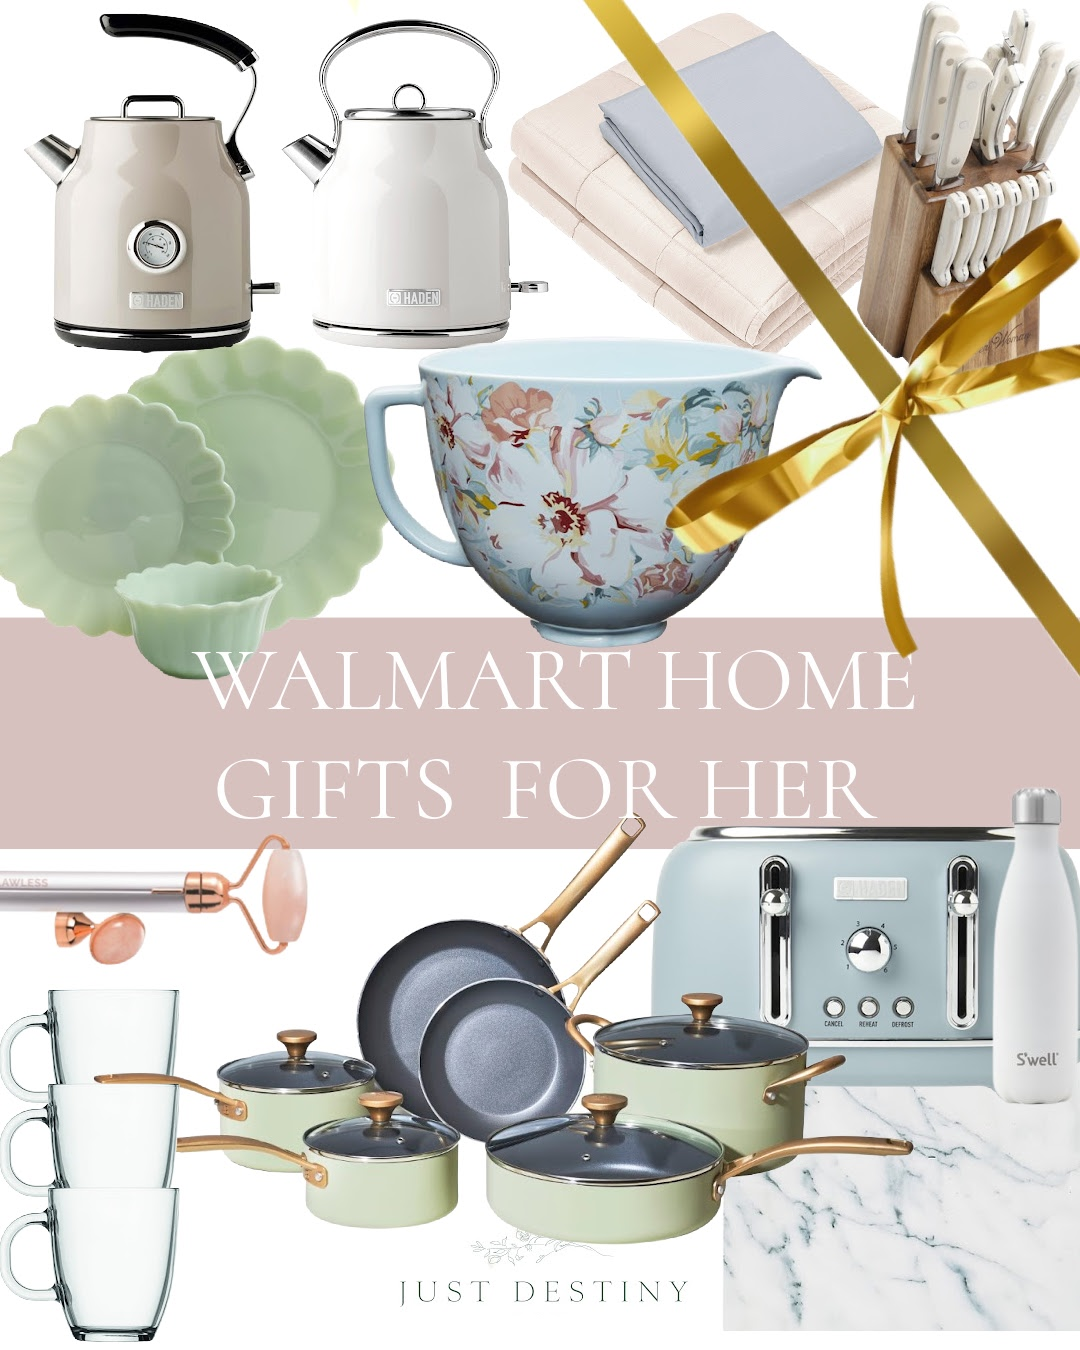 Walmart Home Gifts for Her